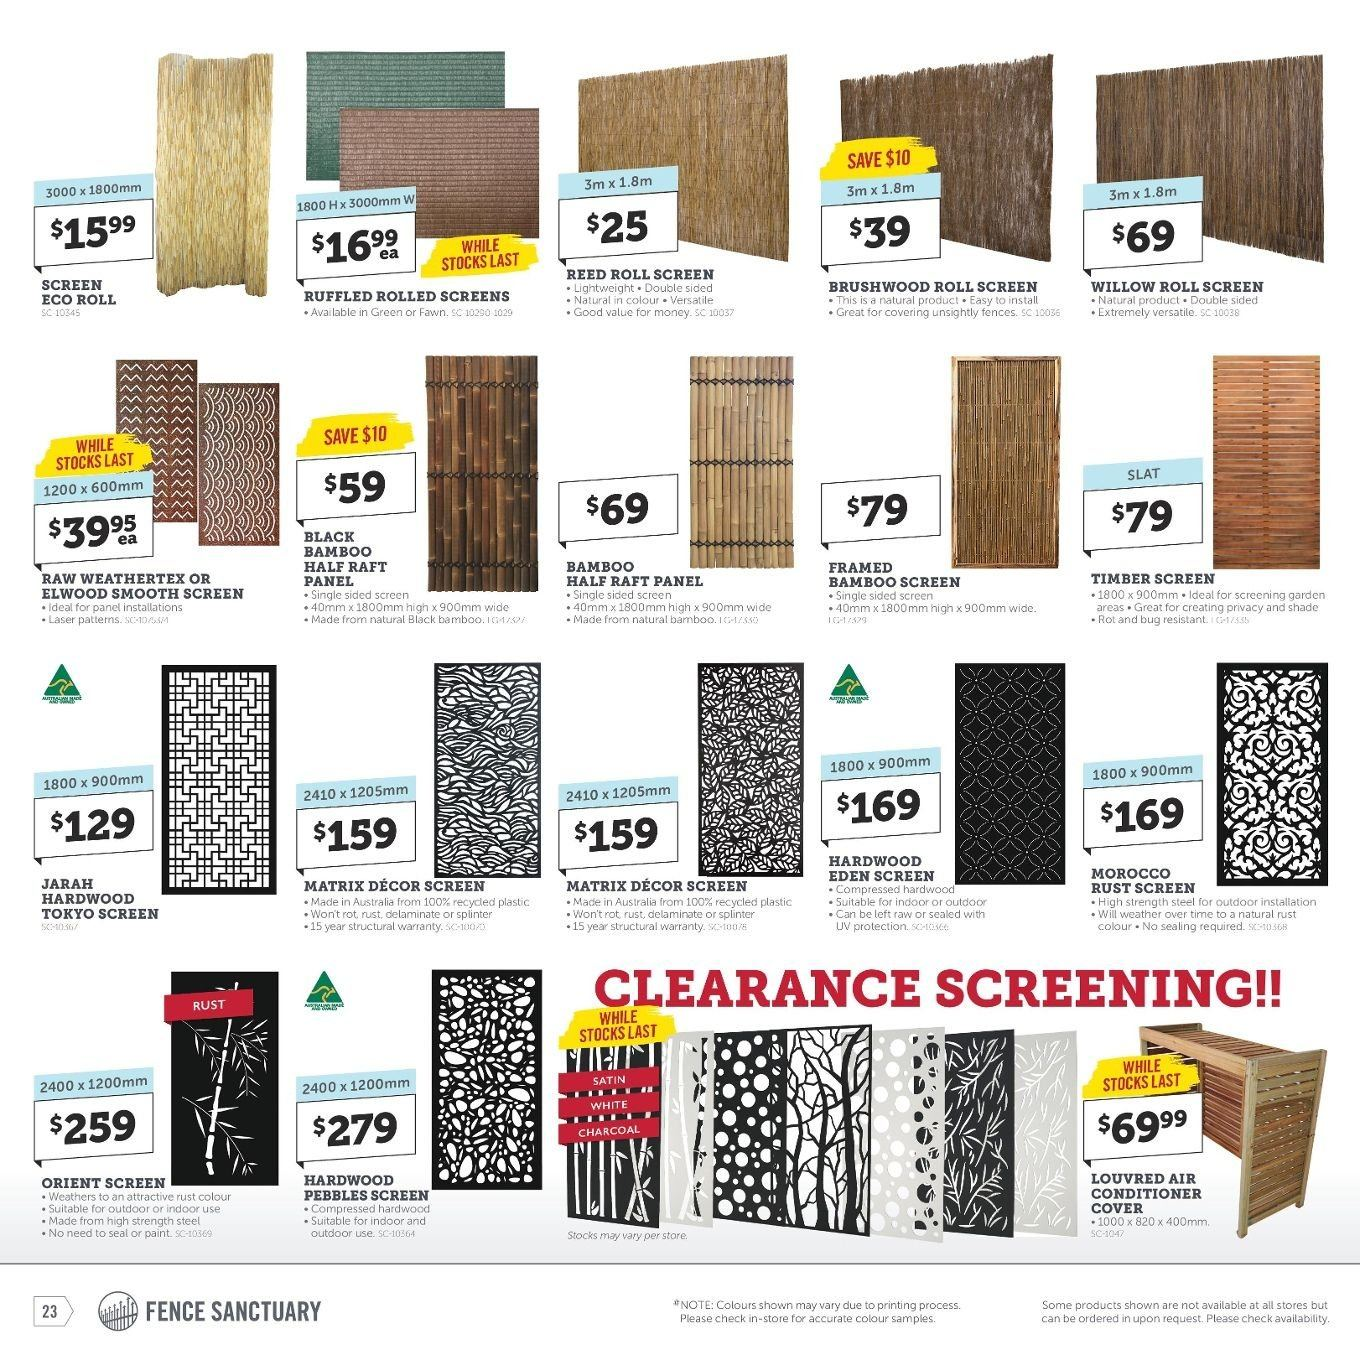 Stratco catalogue and weekly specials 8 2 2019 - 3 3 2019 | Au